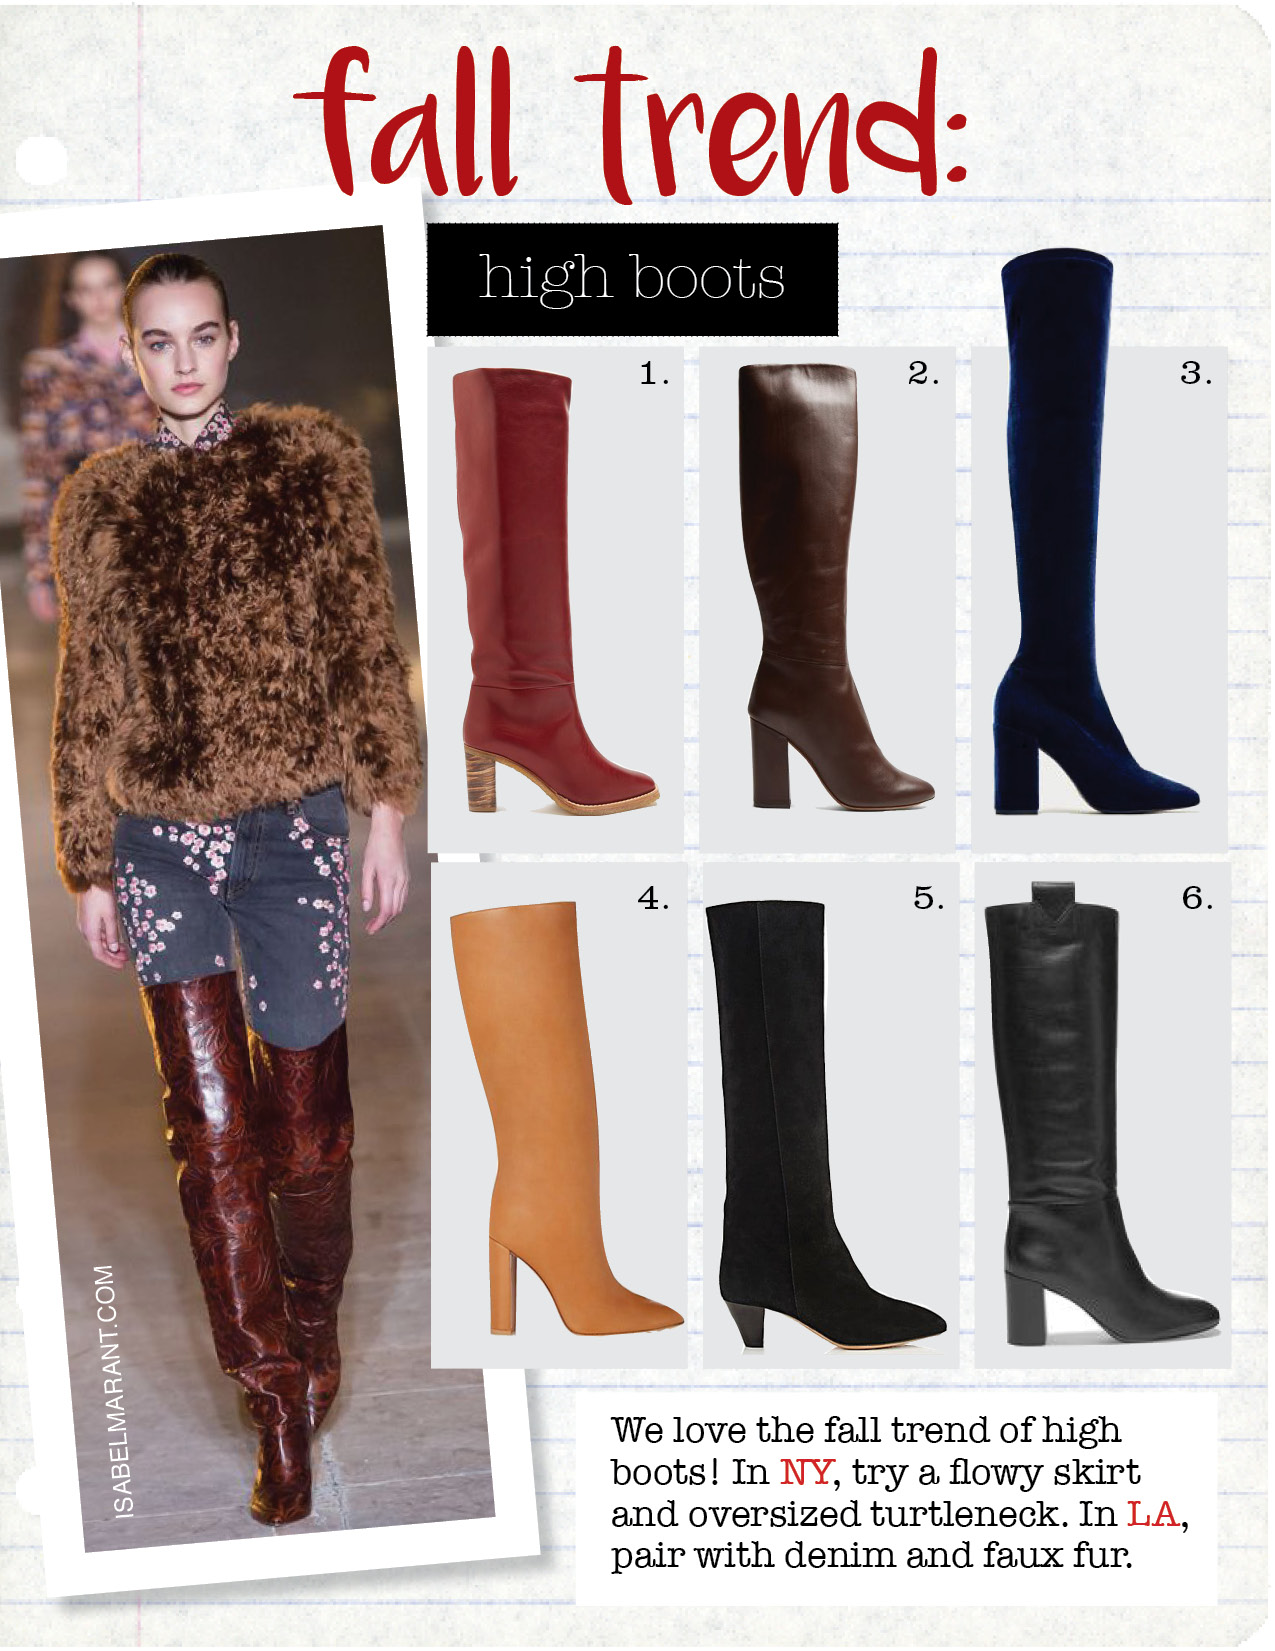 1. gabriela hearst marlene leather knee-high boots, $1154,  matchesfashion.com  2. tabitha simmons sophie knee-high leather boots, $961,  Matchesfashion.com  3. zara velvet over th eknee high heel boots, $69,  zara.com  4. gianvito rossi leather knee boots, $1625,  barneys.com  5. isabel marant robby knee boots, $640,  barneys.com  6. mercedes castillo emmett leather knee boots, $850,  net-a-porter.com